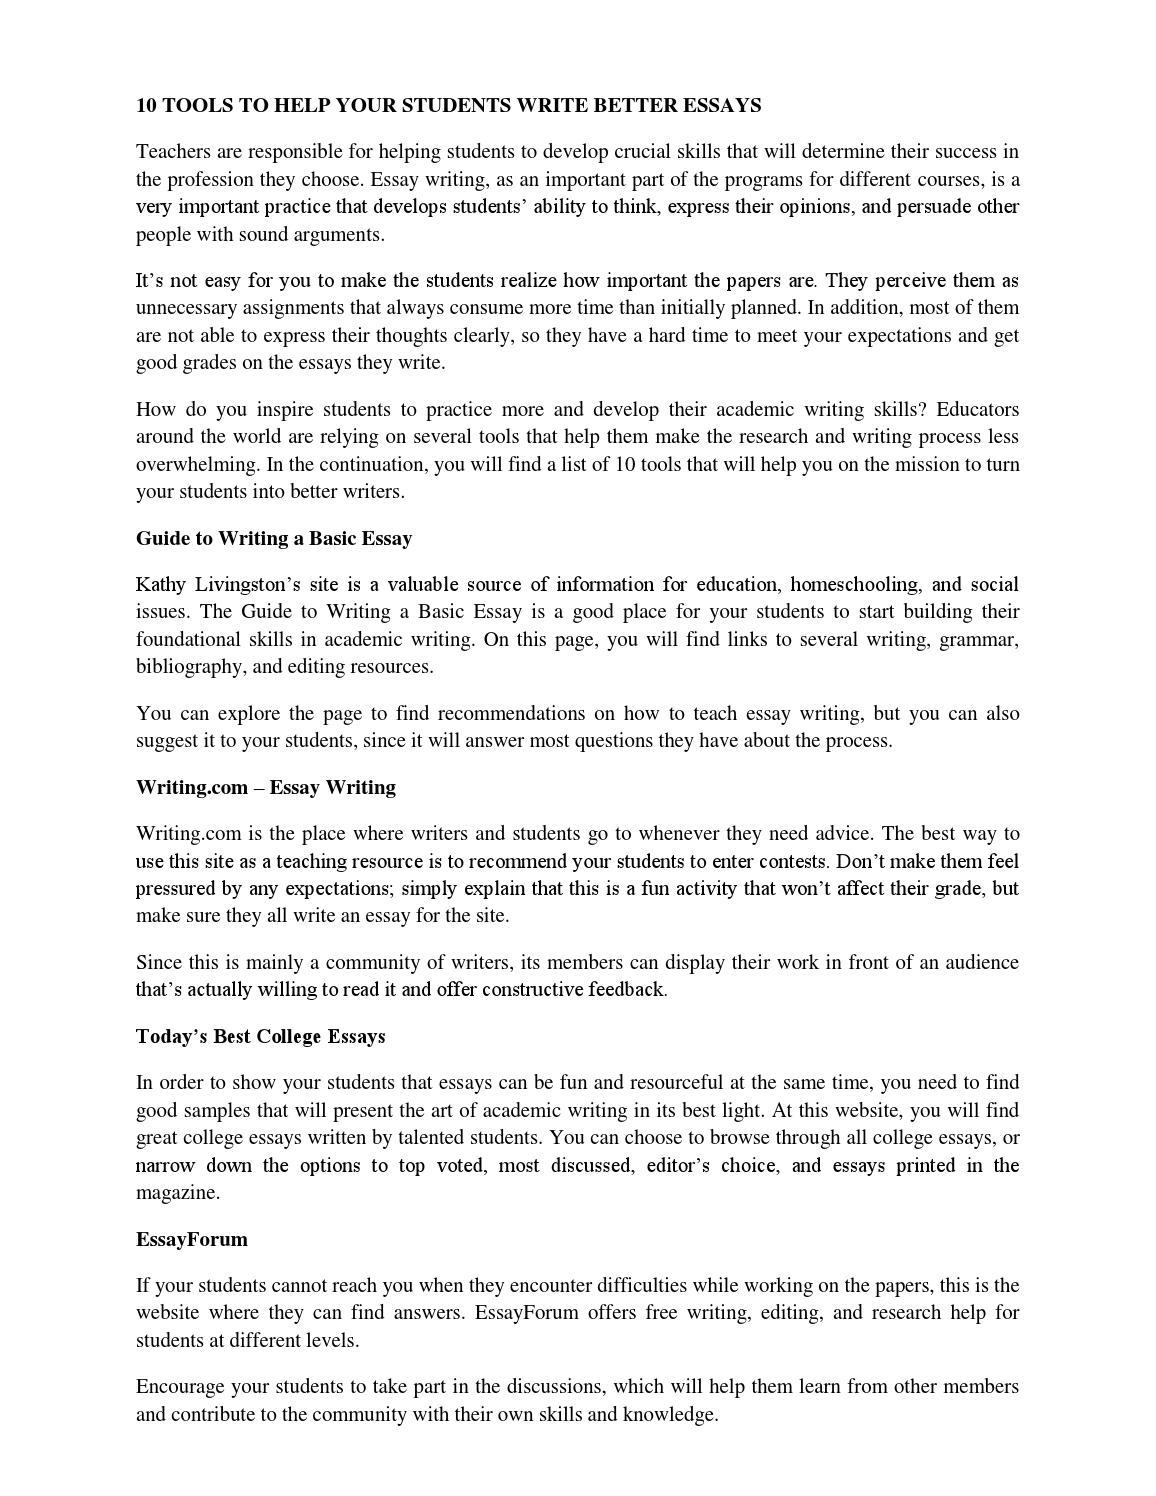 002 Research Paper Websites Essay Writing Reviews For Students Editing Free Page Example Formidable Best Good Sources Papers Download Full